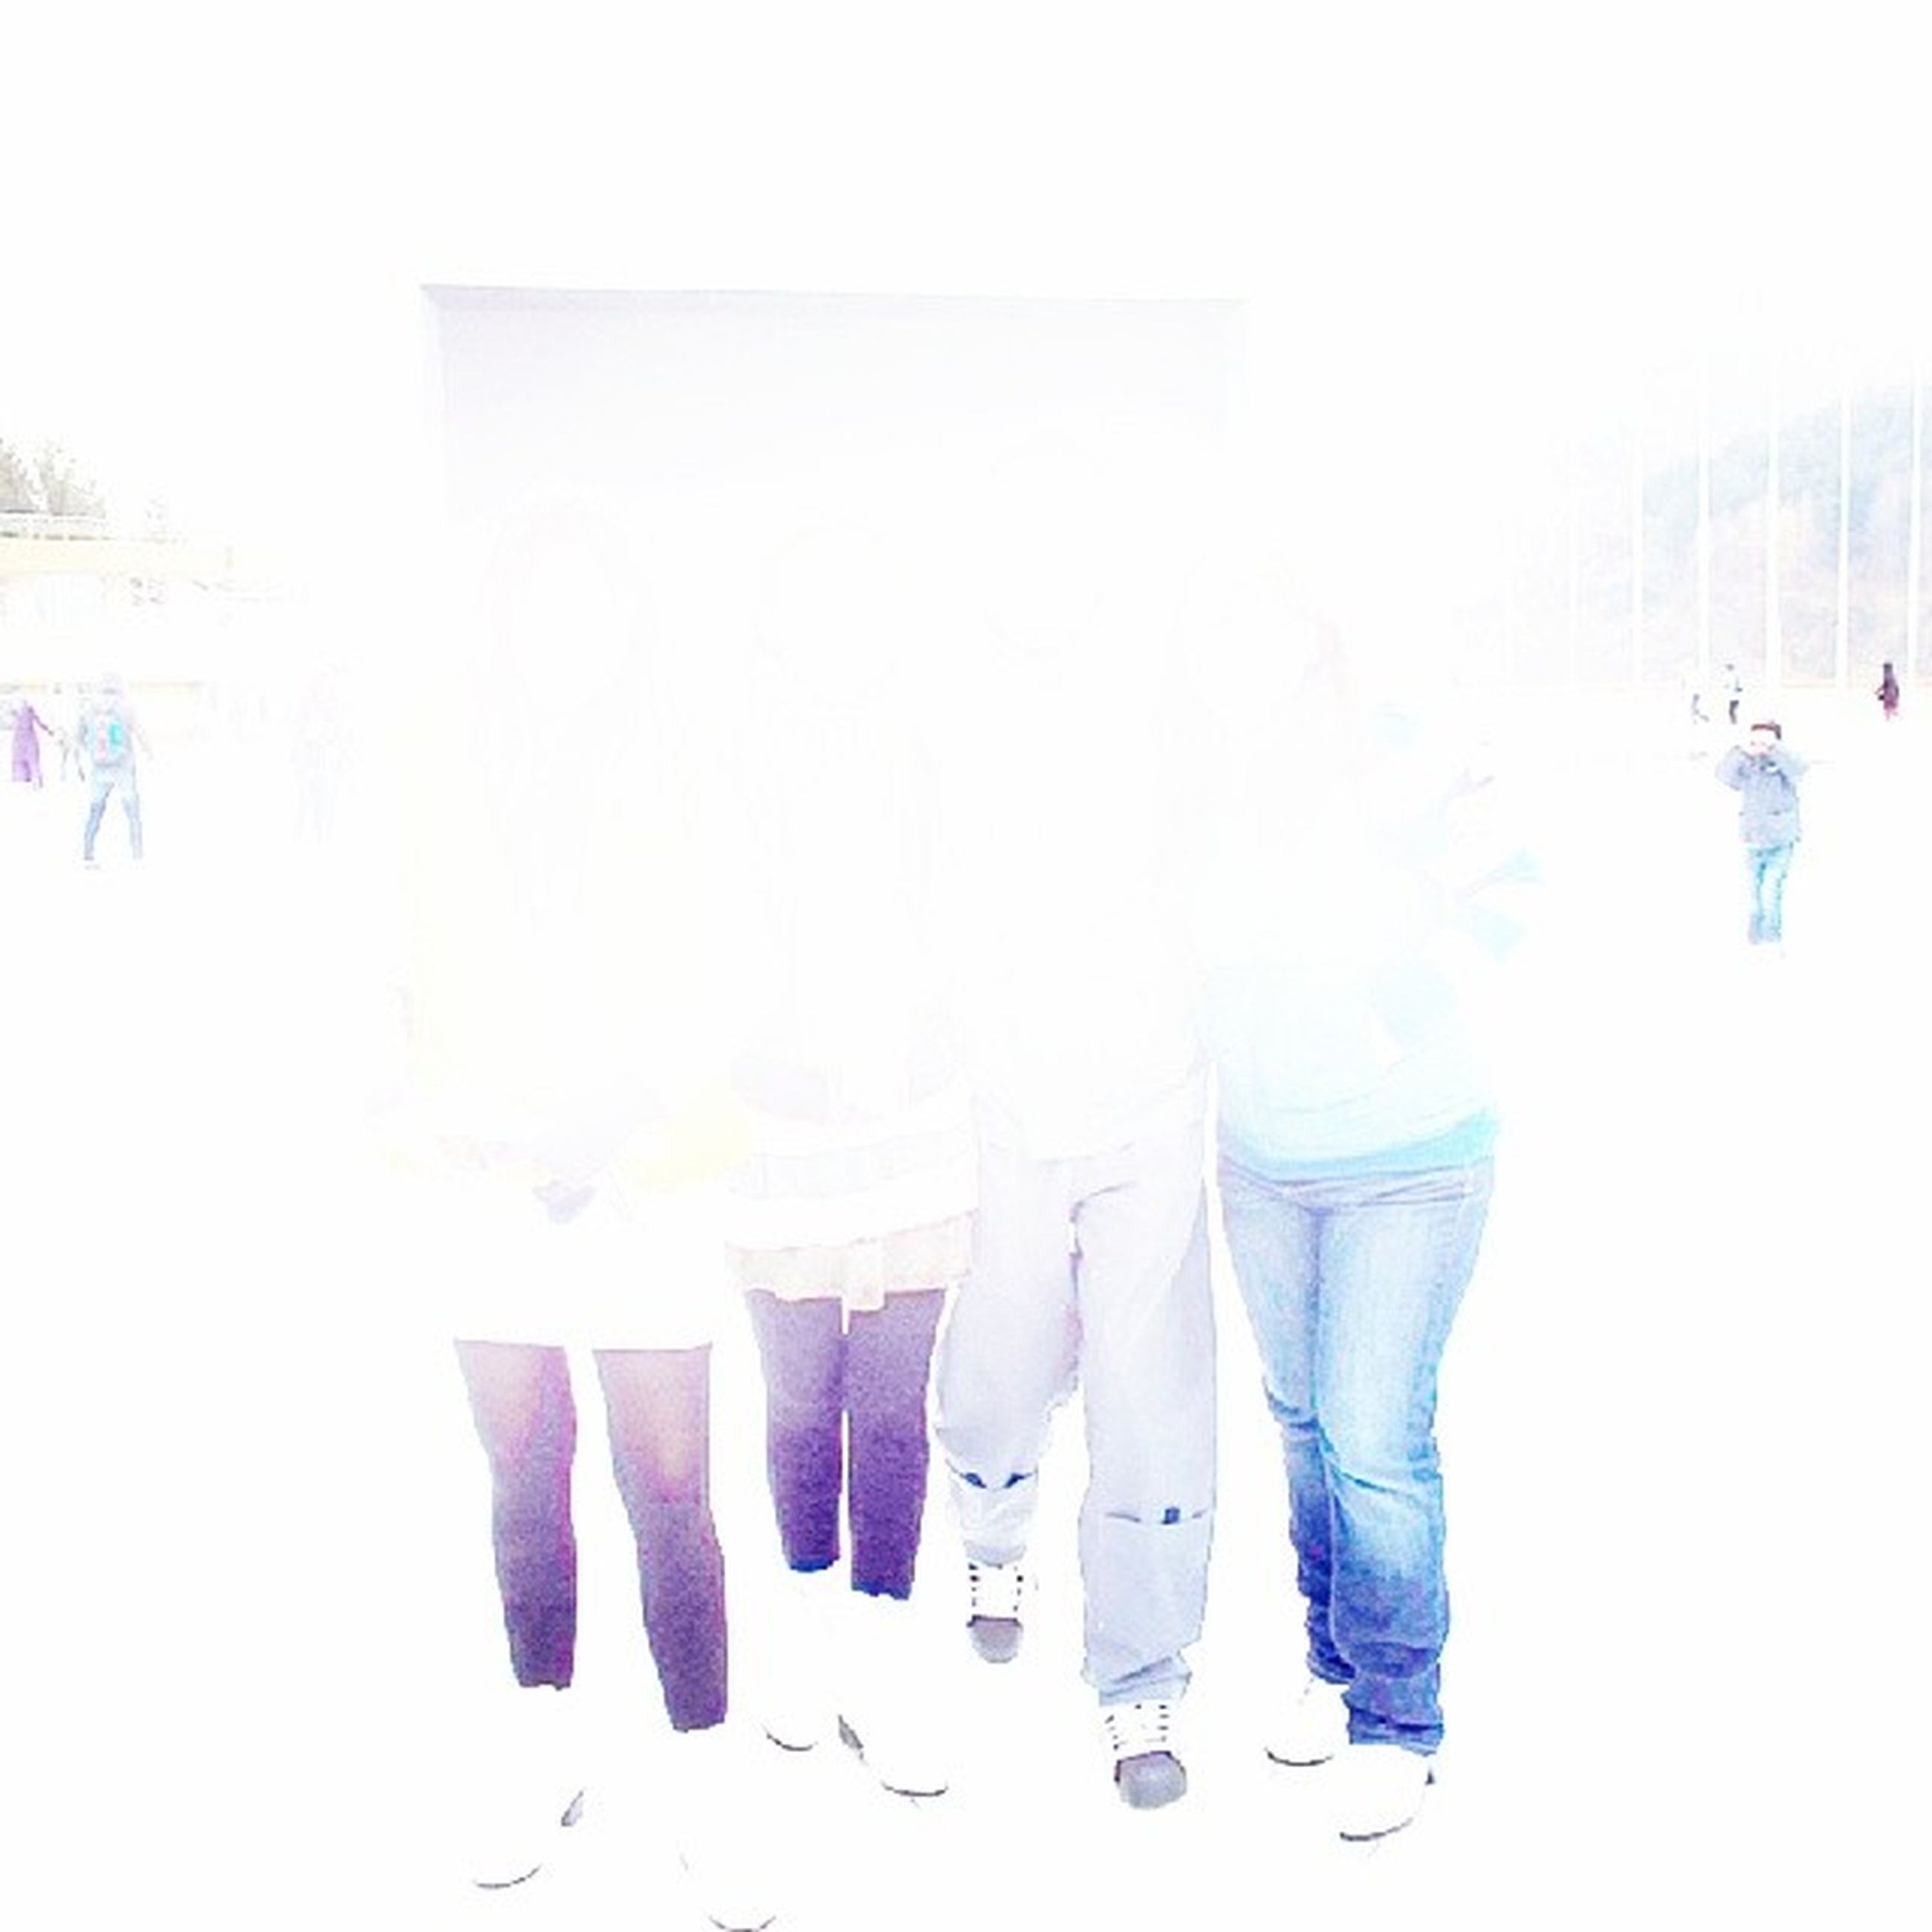 lifestyles, leisure activity, men, person, standing, large group of people, copy space, casual clothing, side by side, in a row, togetherness, rear view, day, walking, hanging, large group of objects, white color, medium group of people